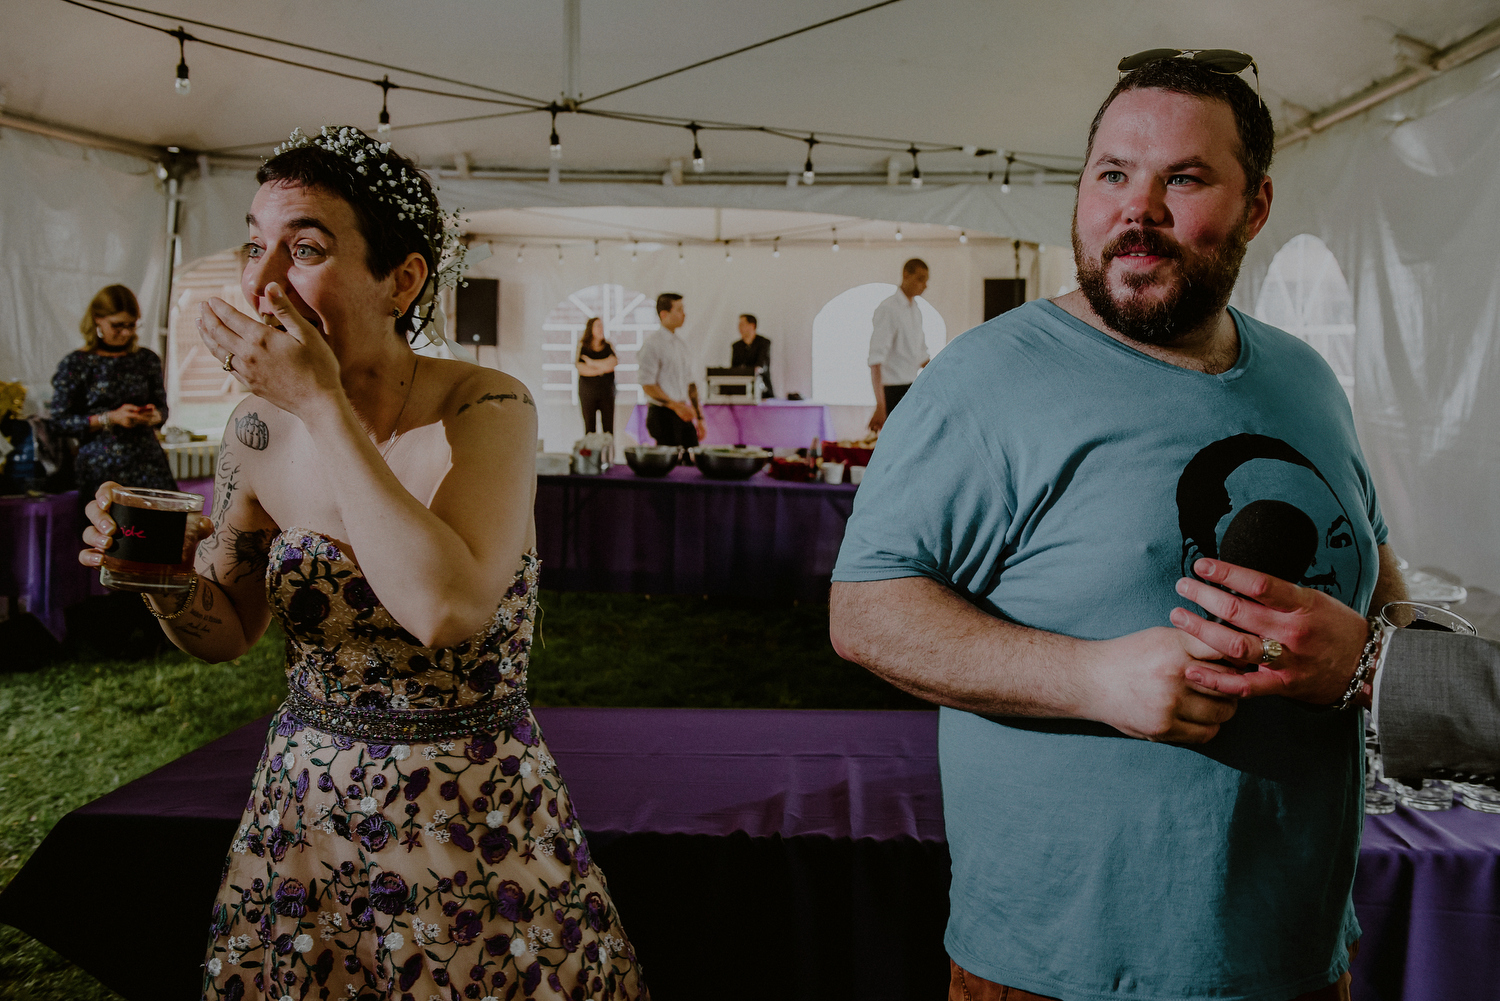 candid wedding photos of reactions during speeches